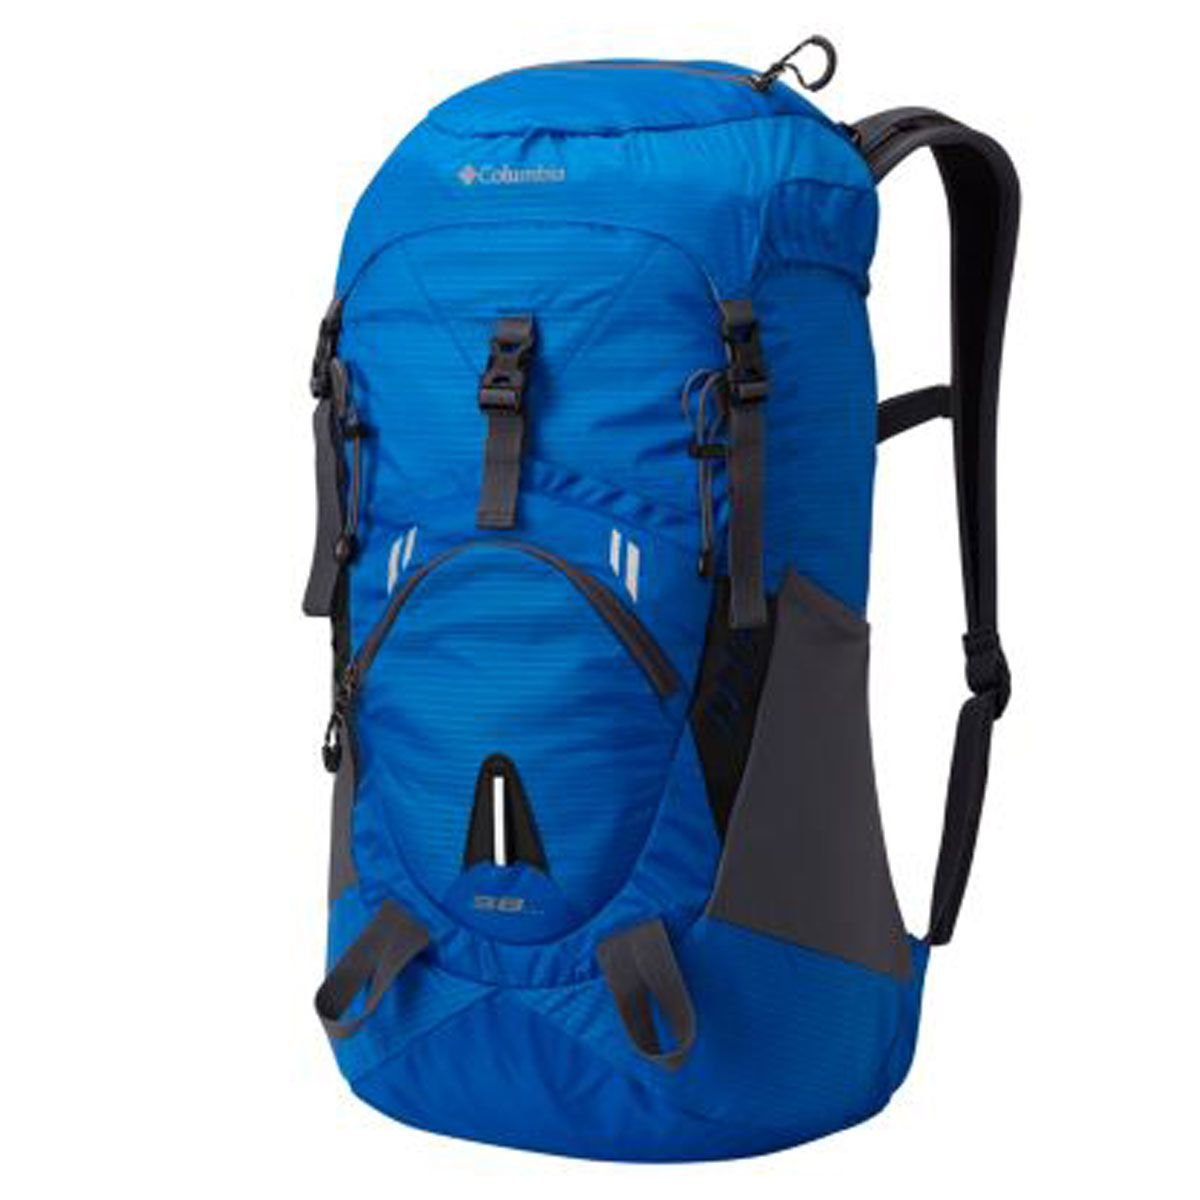 Mochila Columbia Outdoor adventure 38L BackPack